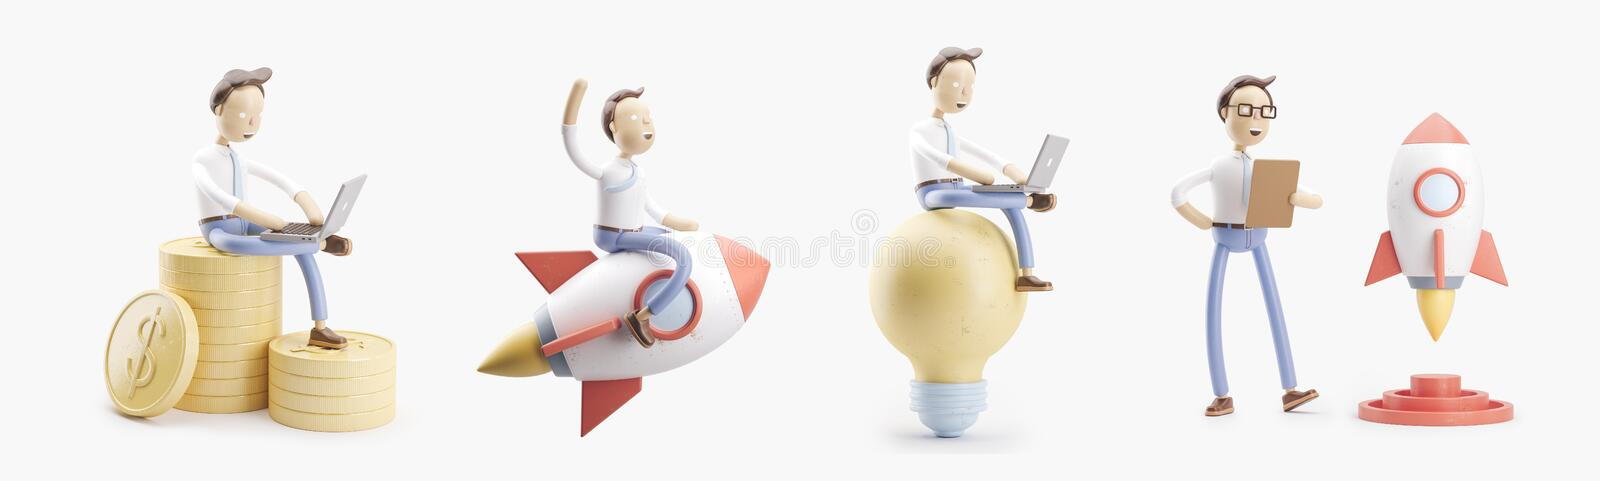 Cartoon character flies on a rocket into space. set of 3d illustrations. concept of creativity ind startup. royalty free illustration